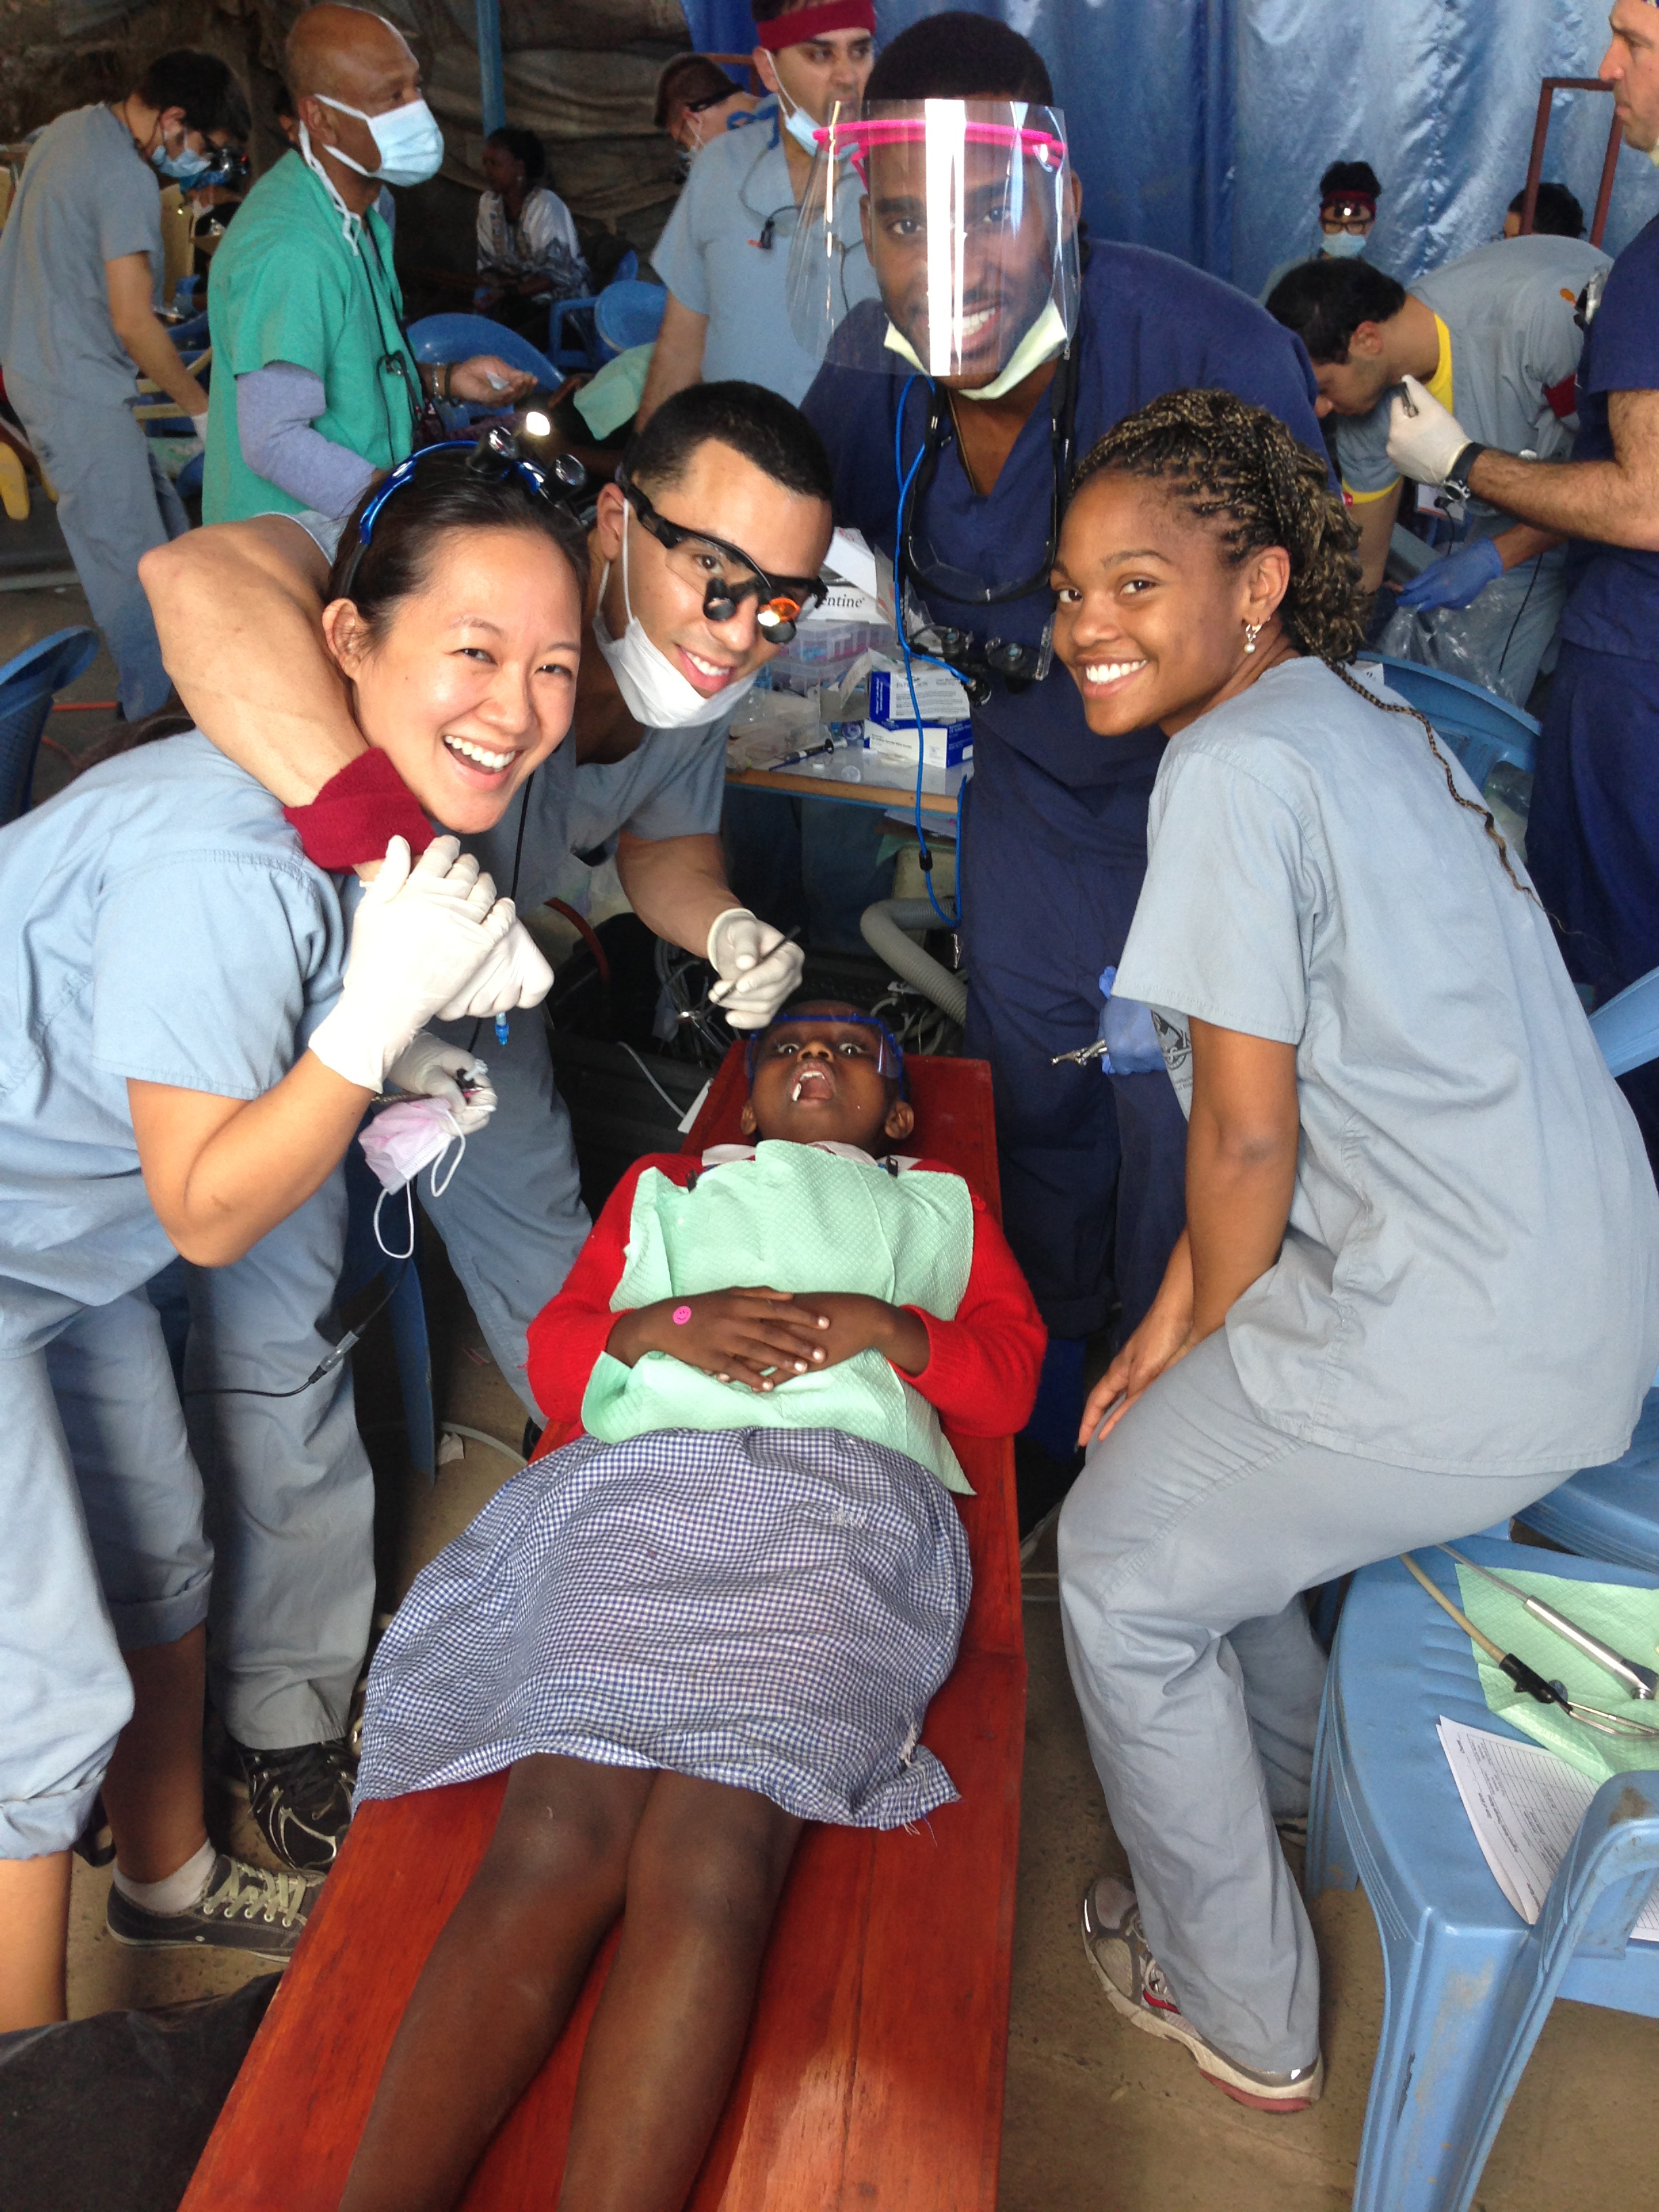 From left, USC dental students Lyndsey Wang, Jose Soto, Kunle Ajanaku and Courtney Clayton in Kenya (Photos/Sean Vreeburg)